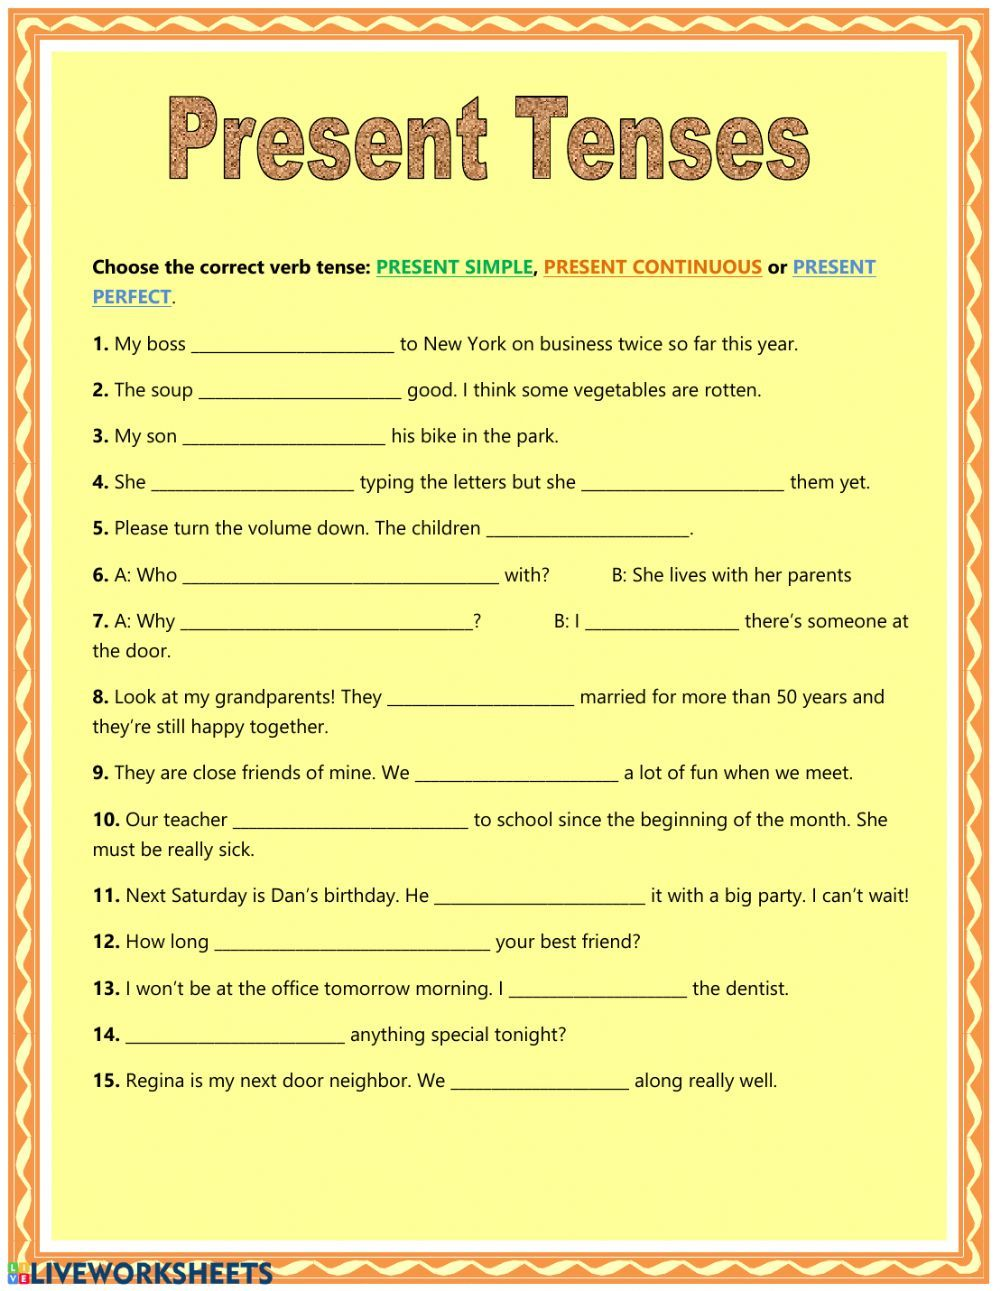 Present Tenses Interactive And Downloadable Worksheet You Can Do The Exercises Online Or Download The Worksheet As Pdf Tenses Present Tense Tenses Exercises [ 1291 x 1000 Pixel ]